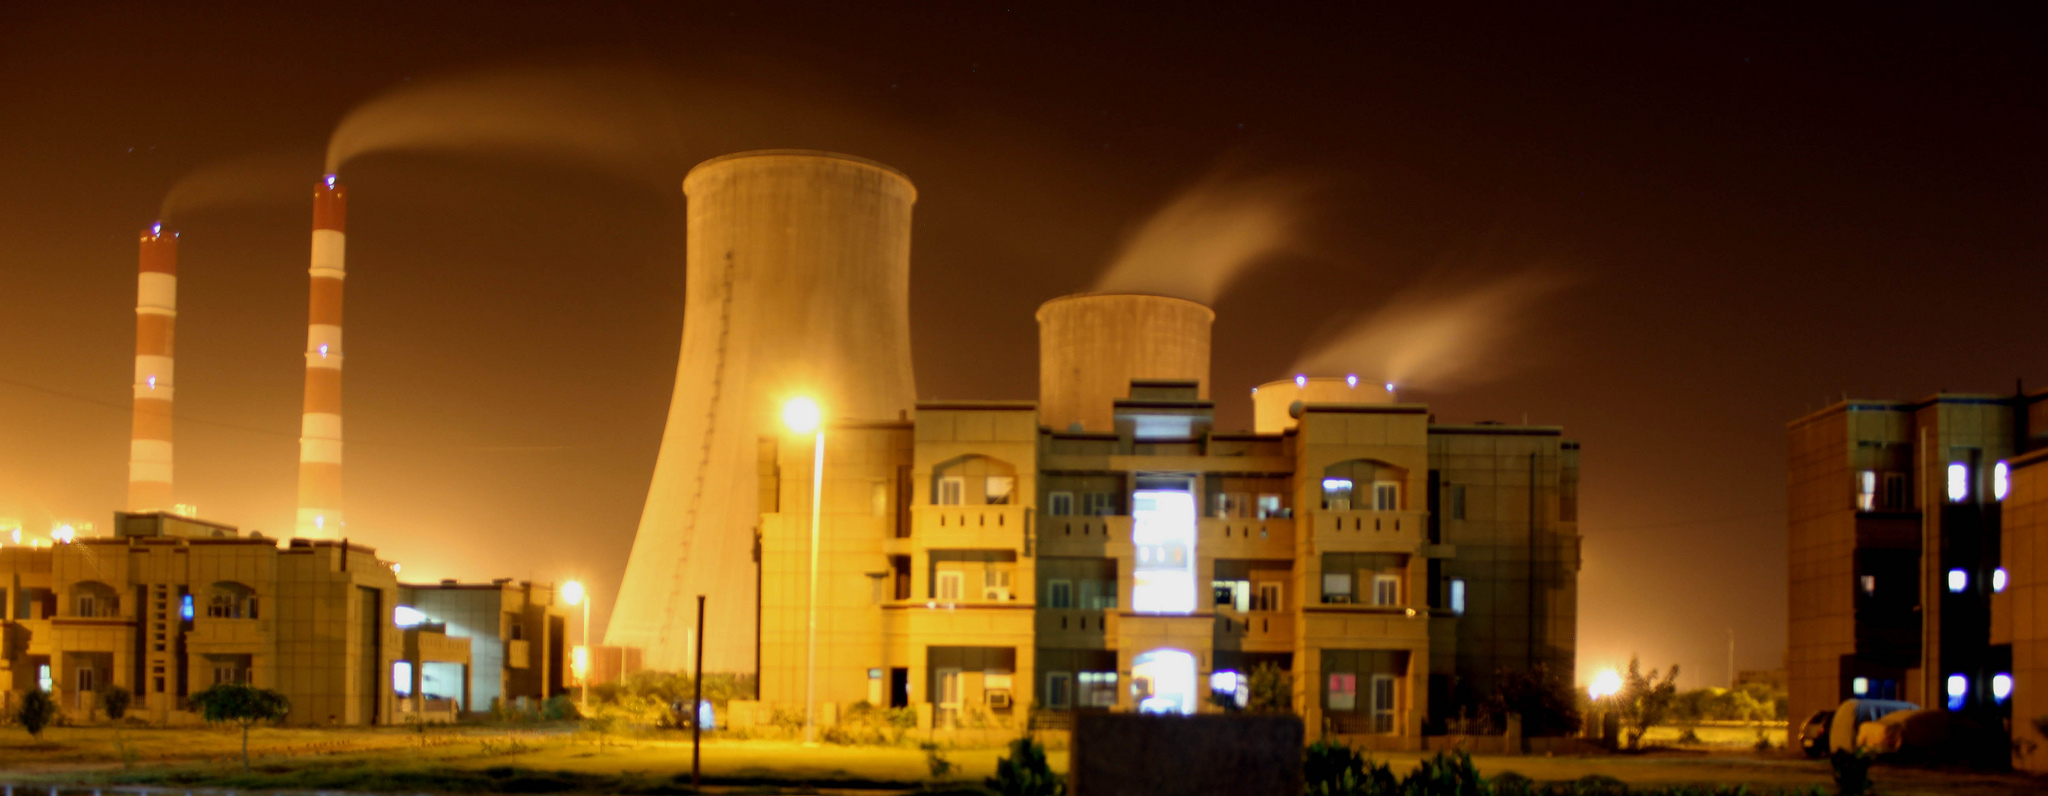 Thermal Power Station : India s energy and climate change challenge energypost eu